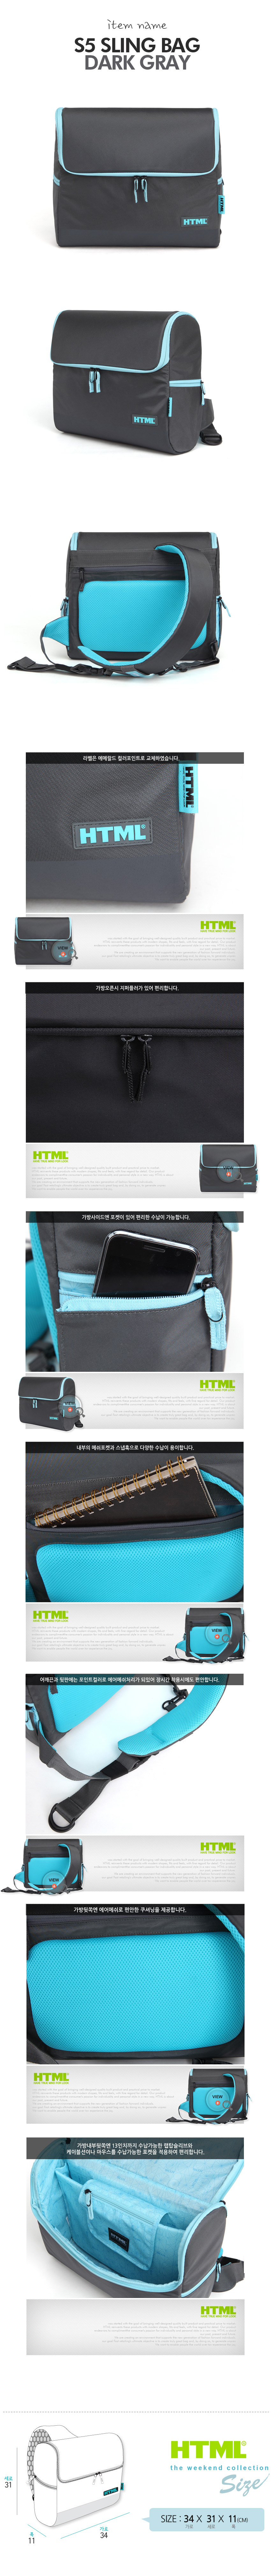 HTML - S5 Slingbag (Dark Gray)